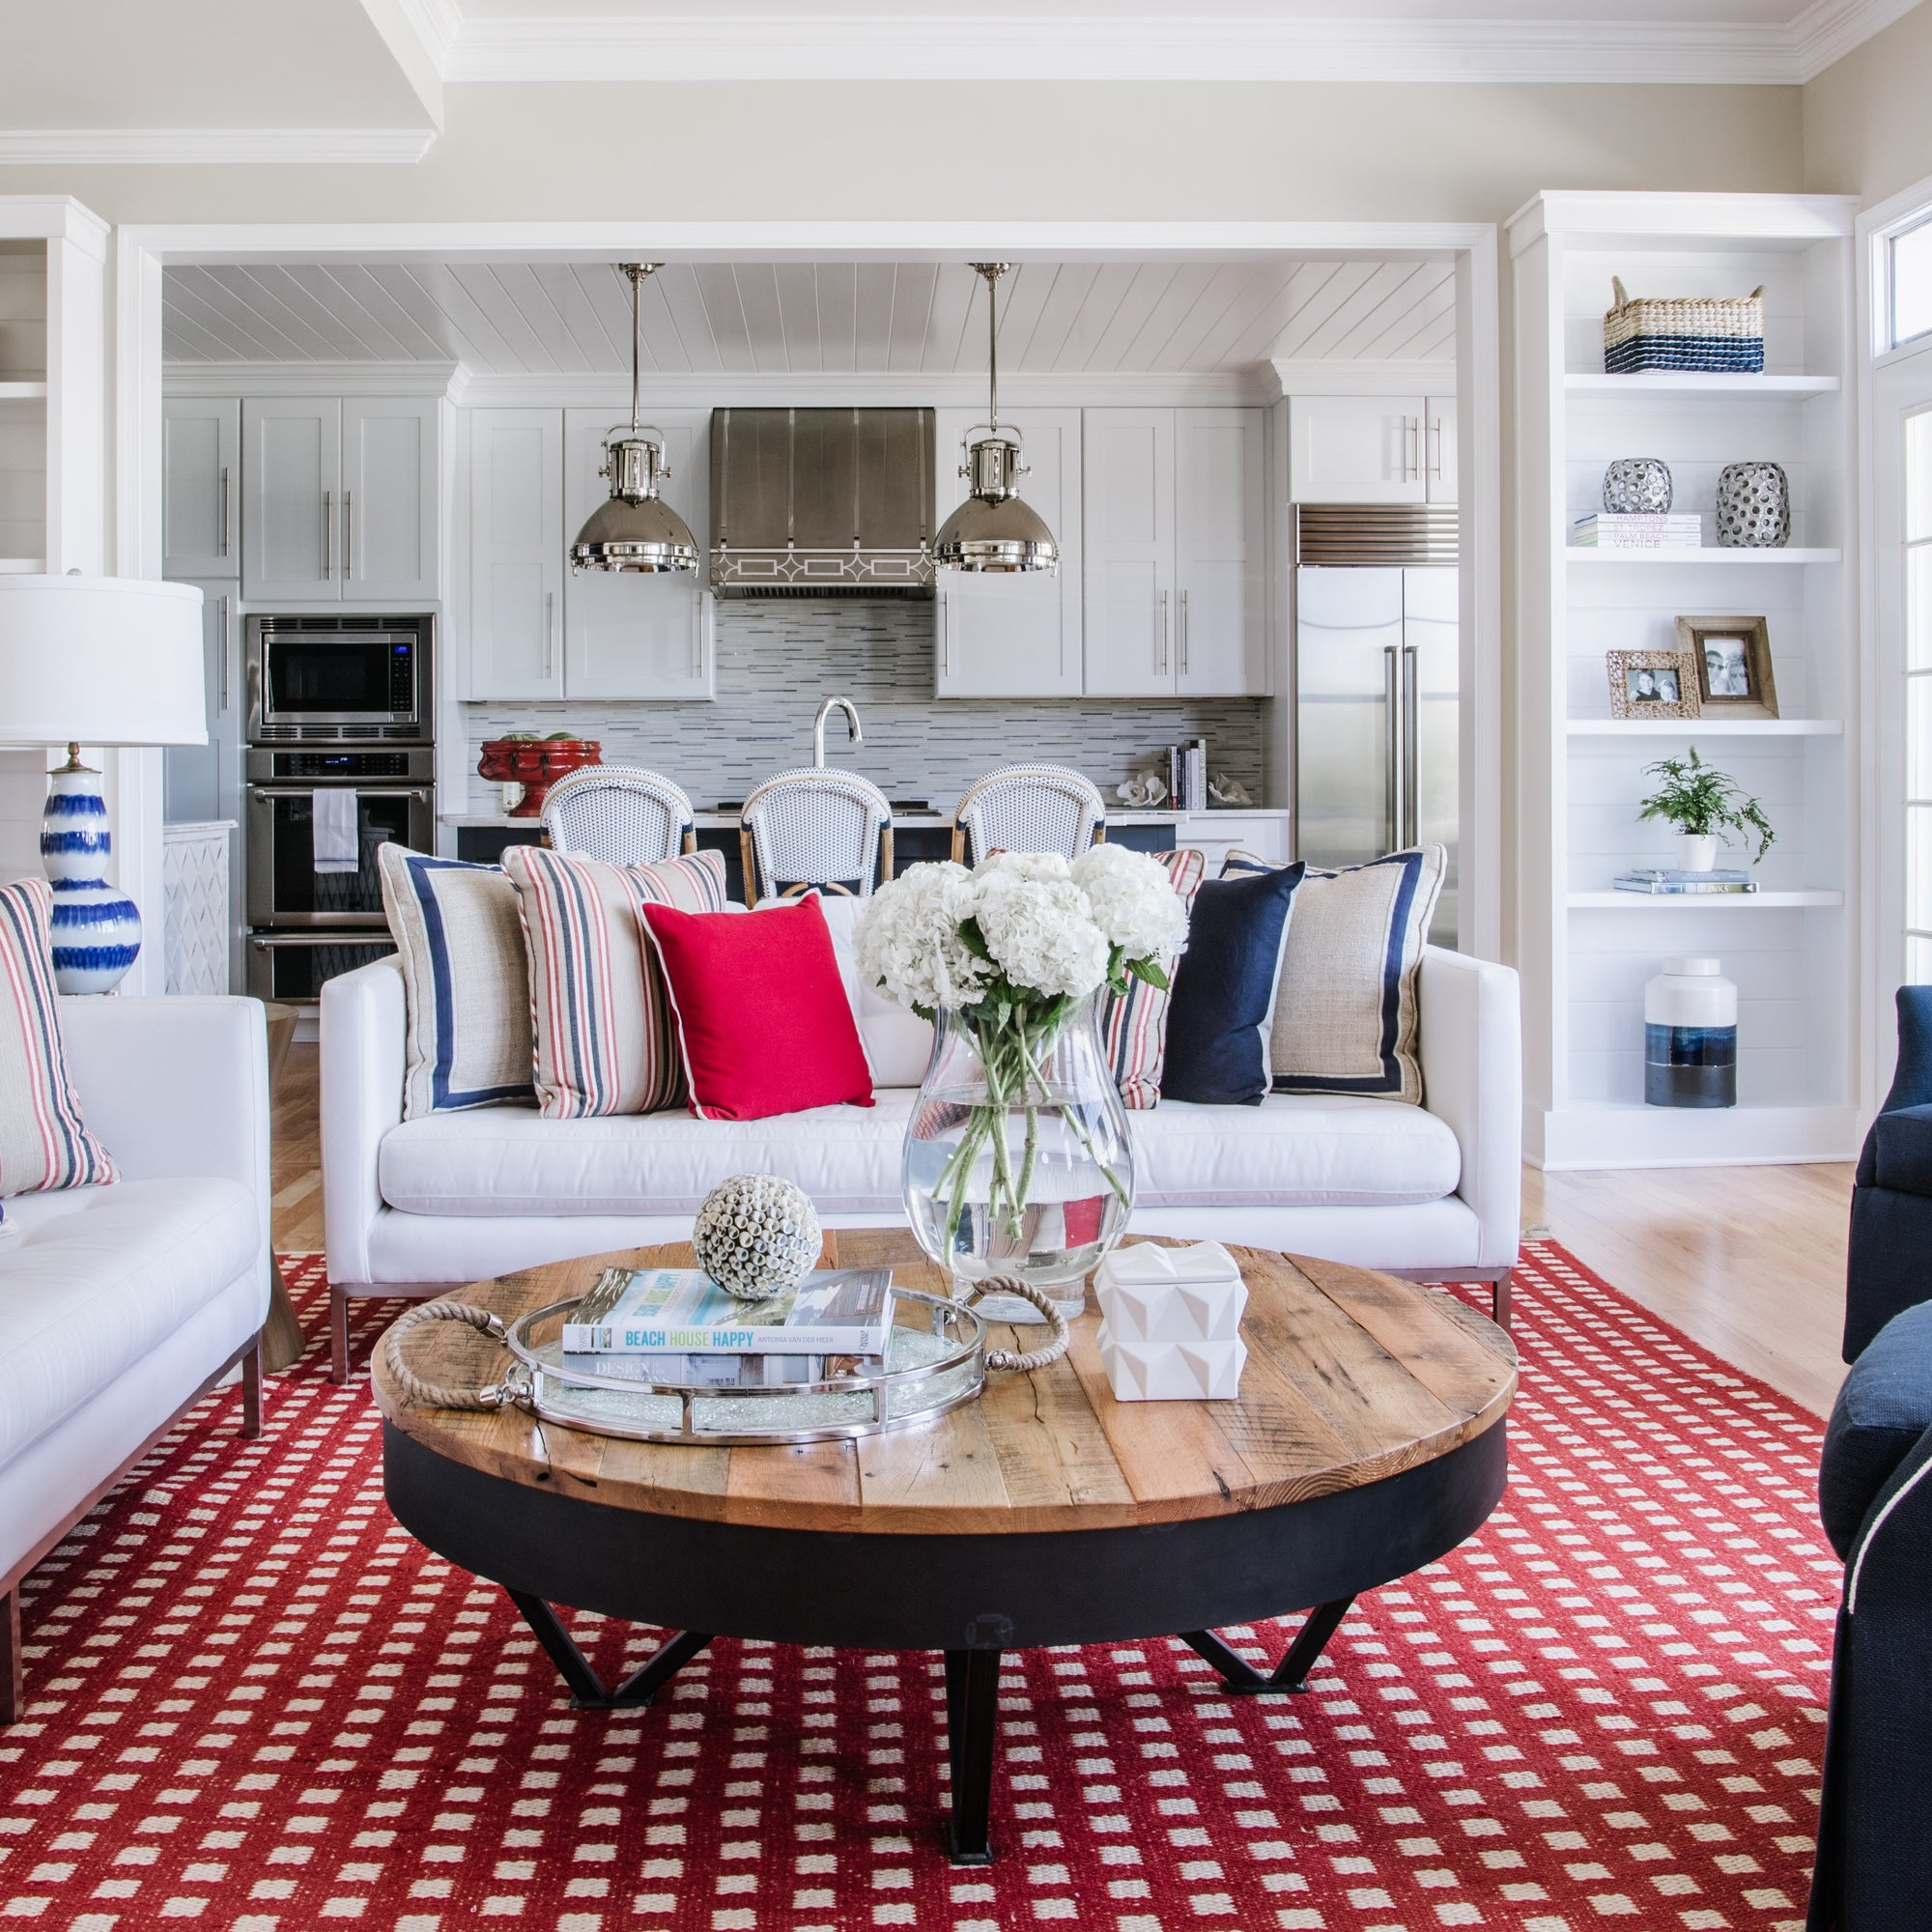 Eastern Shore modern luxury by Jamie Merida Interiors - shows red, white, and blue sitting room with nautical style; kitchen in background